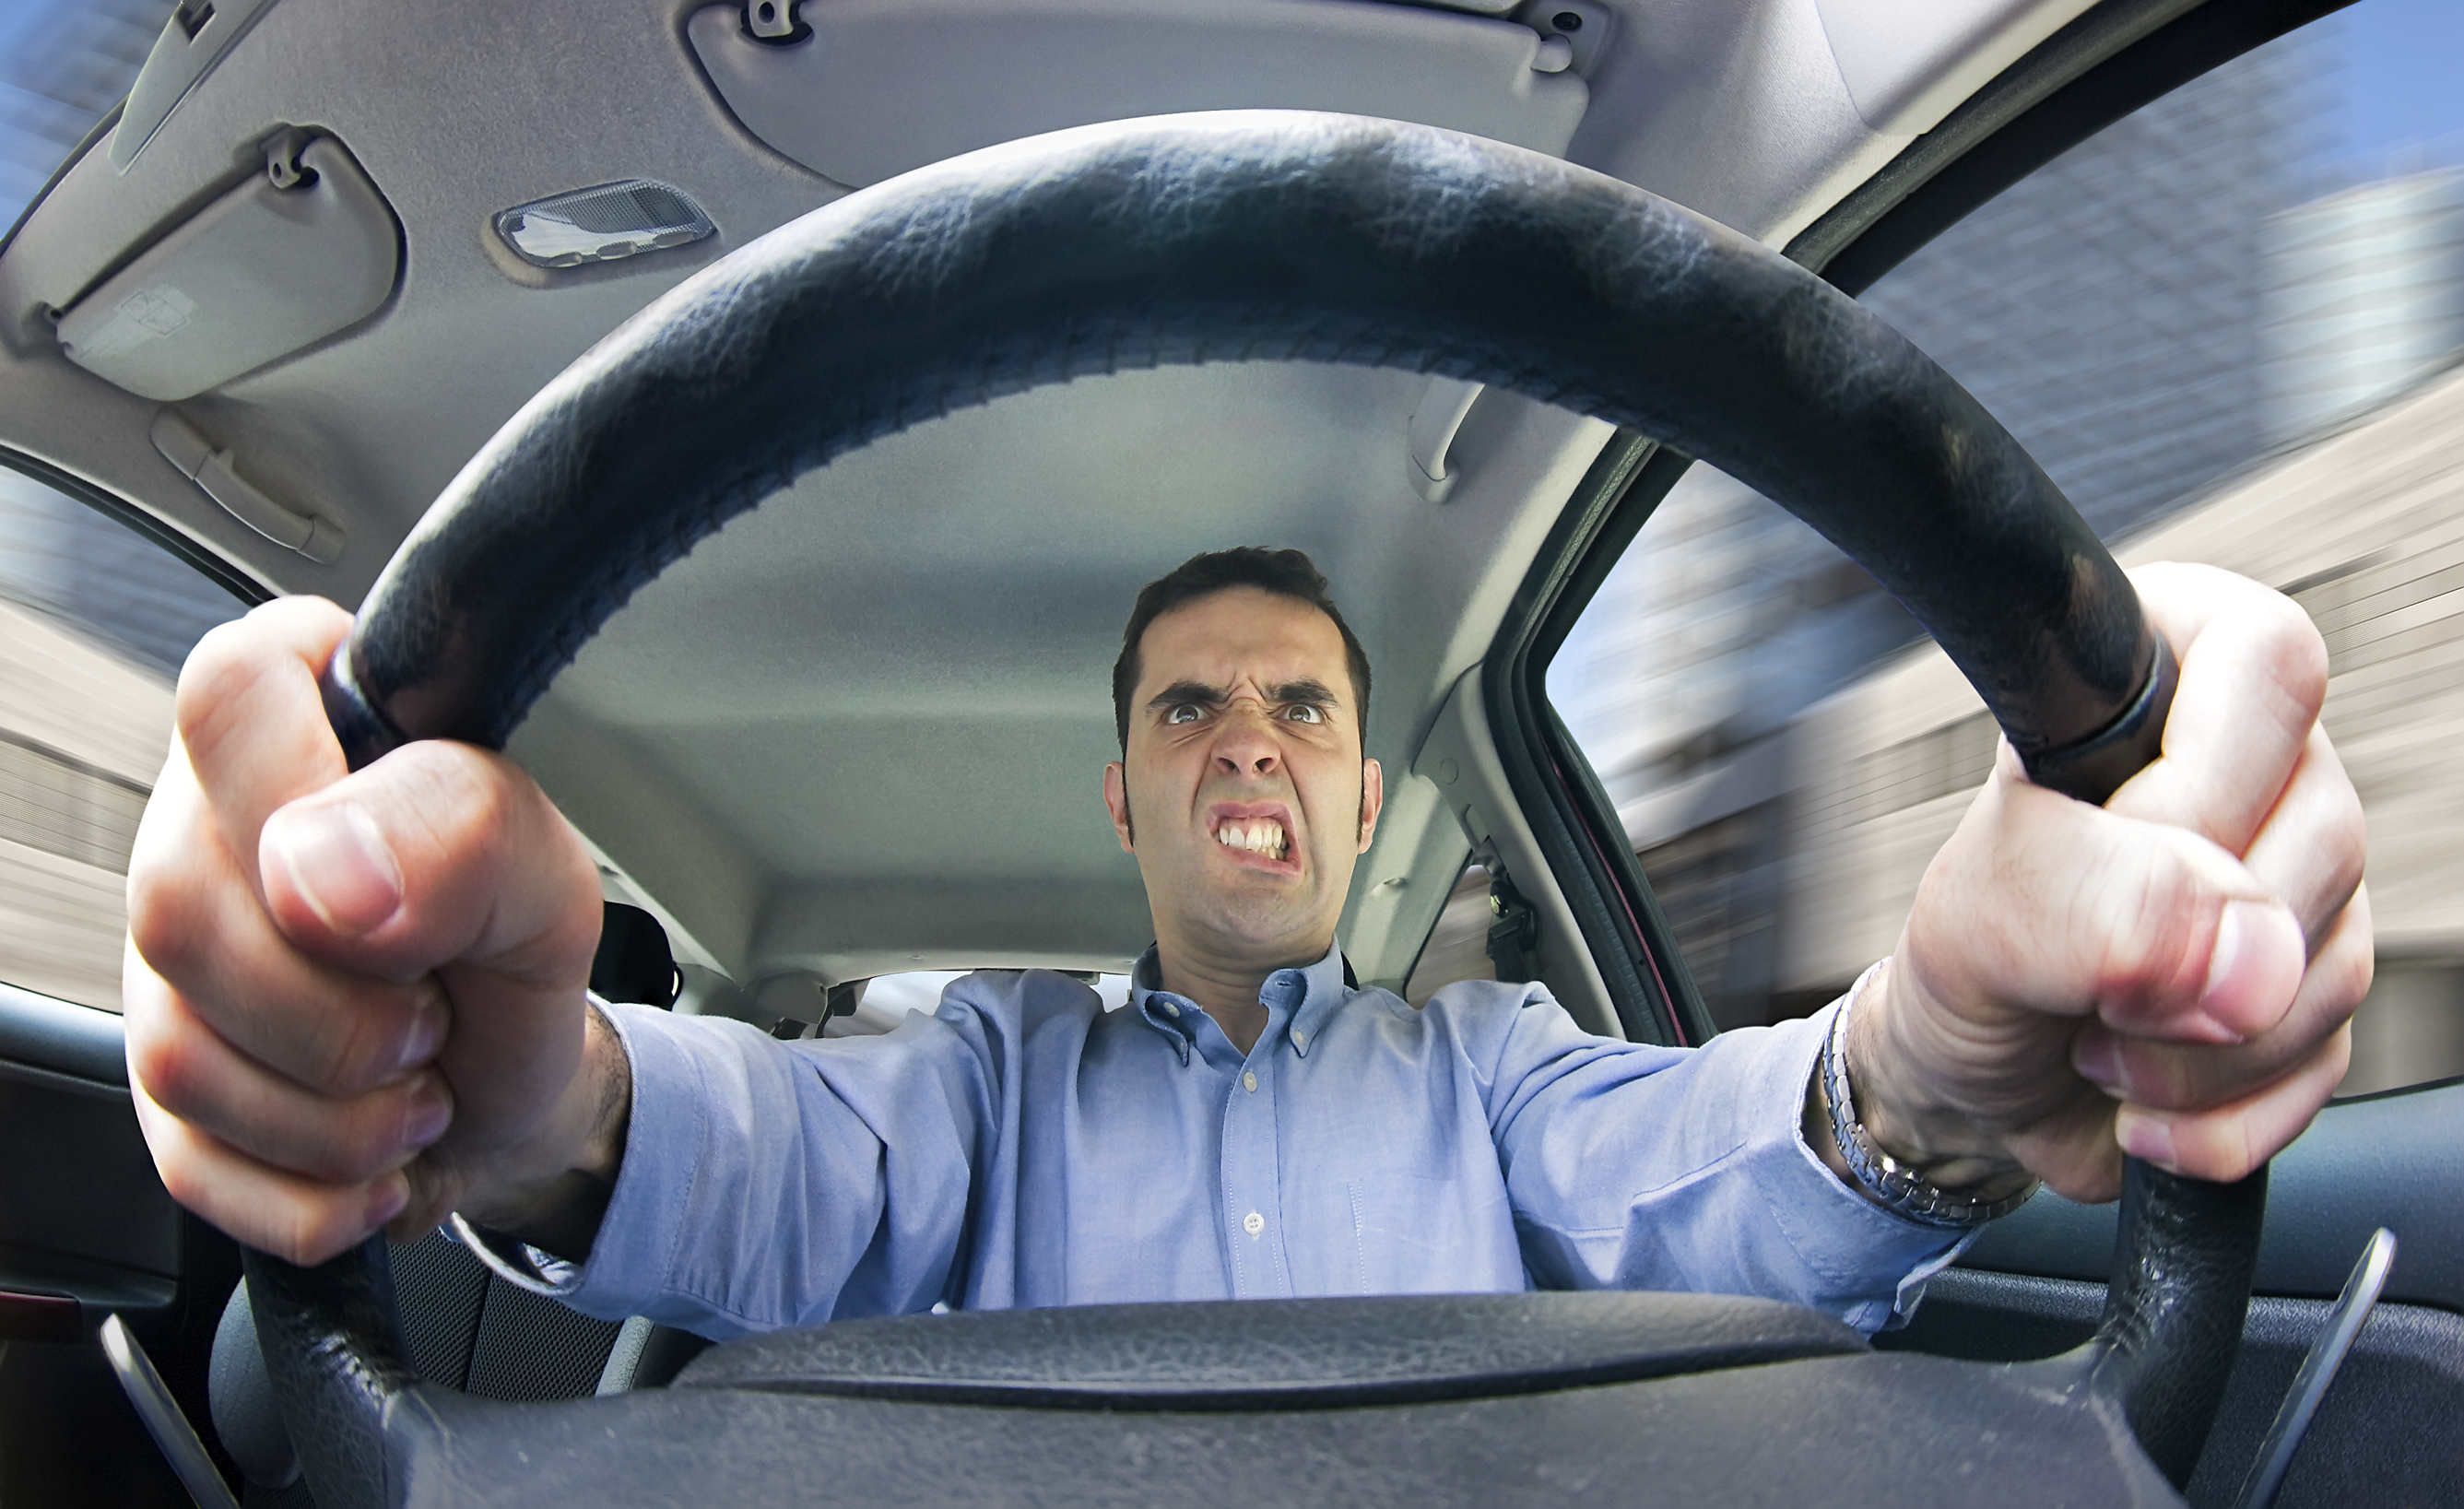 road rage no harm spilt a furious man driving as seen from behind the wheel shot using a very